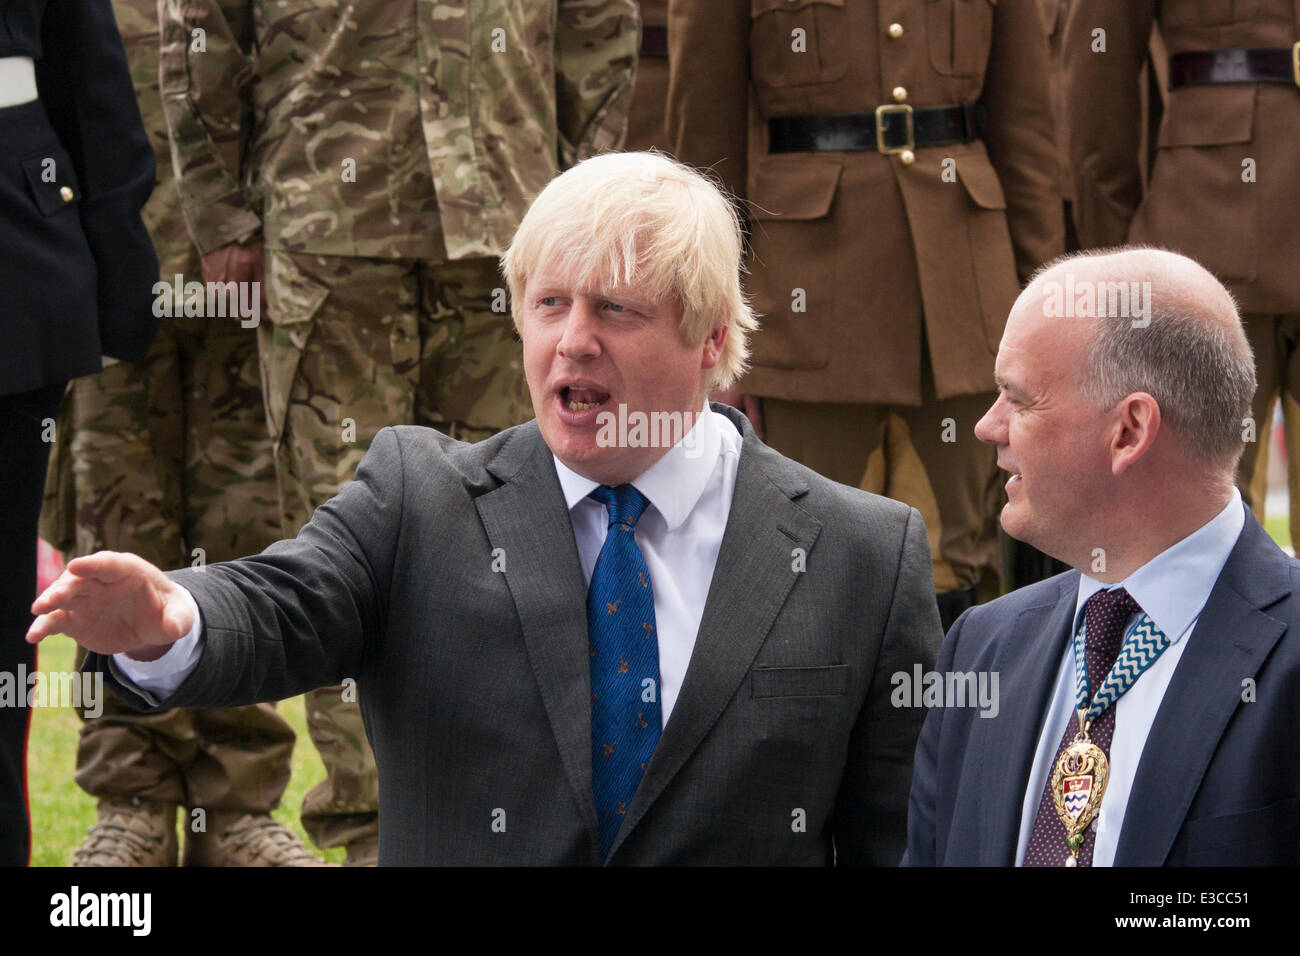 London, UK. 23rd June, 2014. Mayor of London Boris Johnson talks to Roger Evans, Chairman of the London Assembly - Stock Image